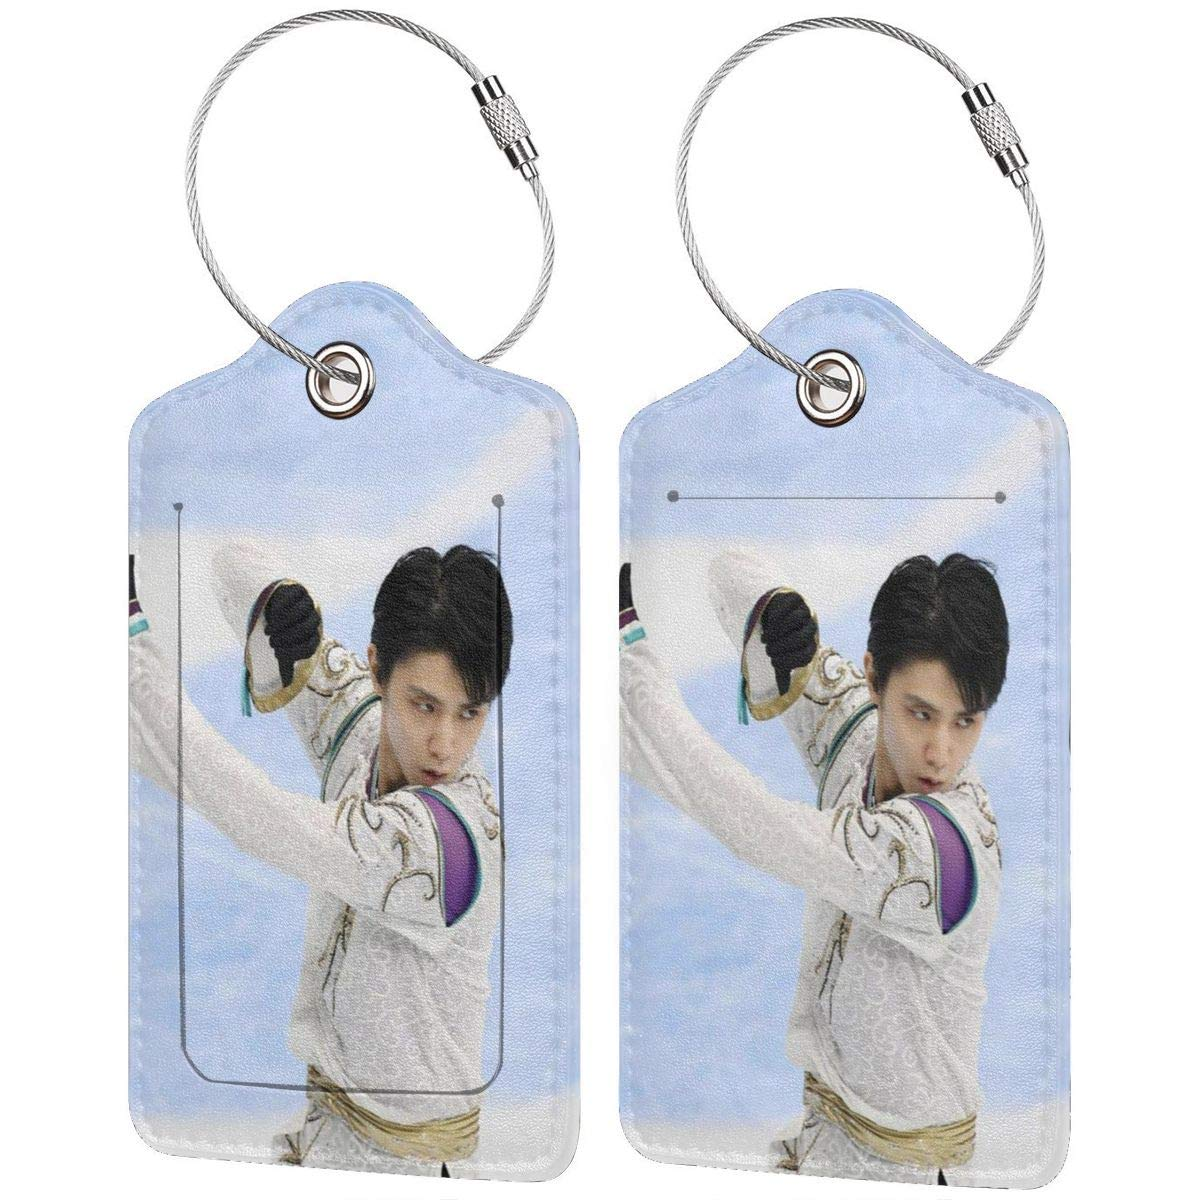 Yuzuru Hanyu 2018 Winter Olympics Mens Singles Champion Leather Instrument Baggage Bag Luggage Tags with Privacy Cover